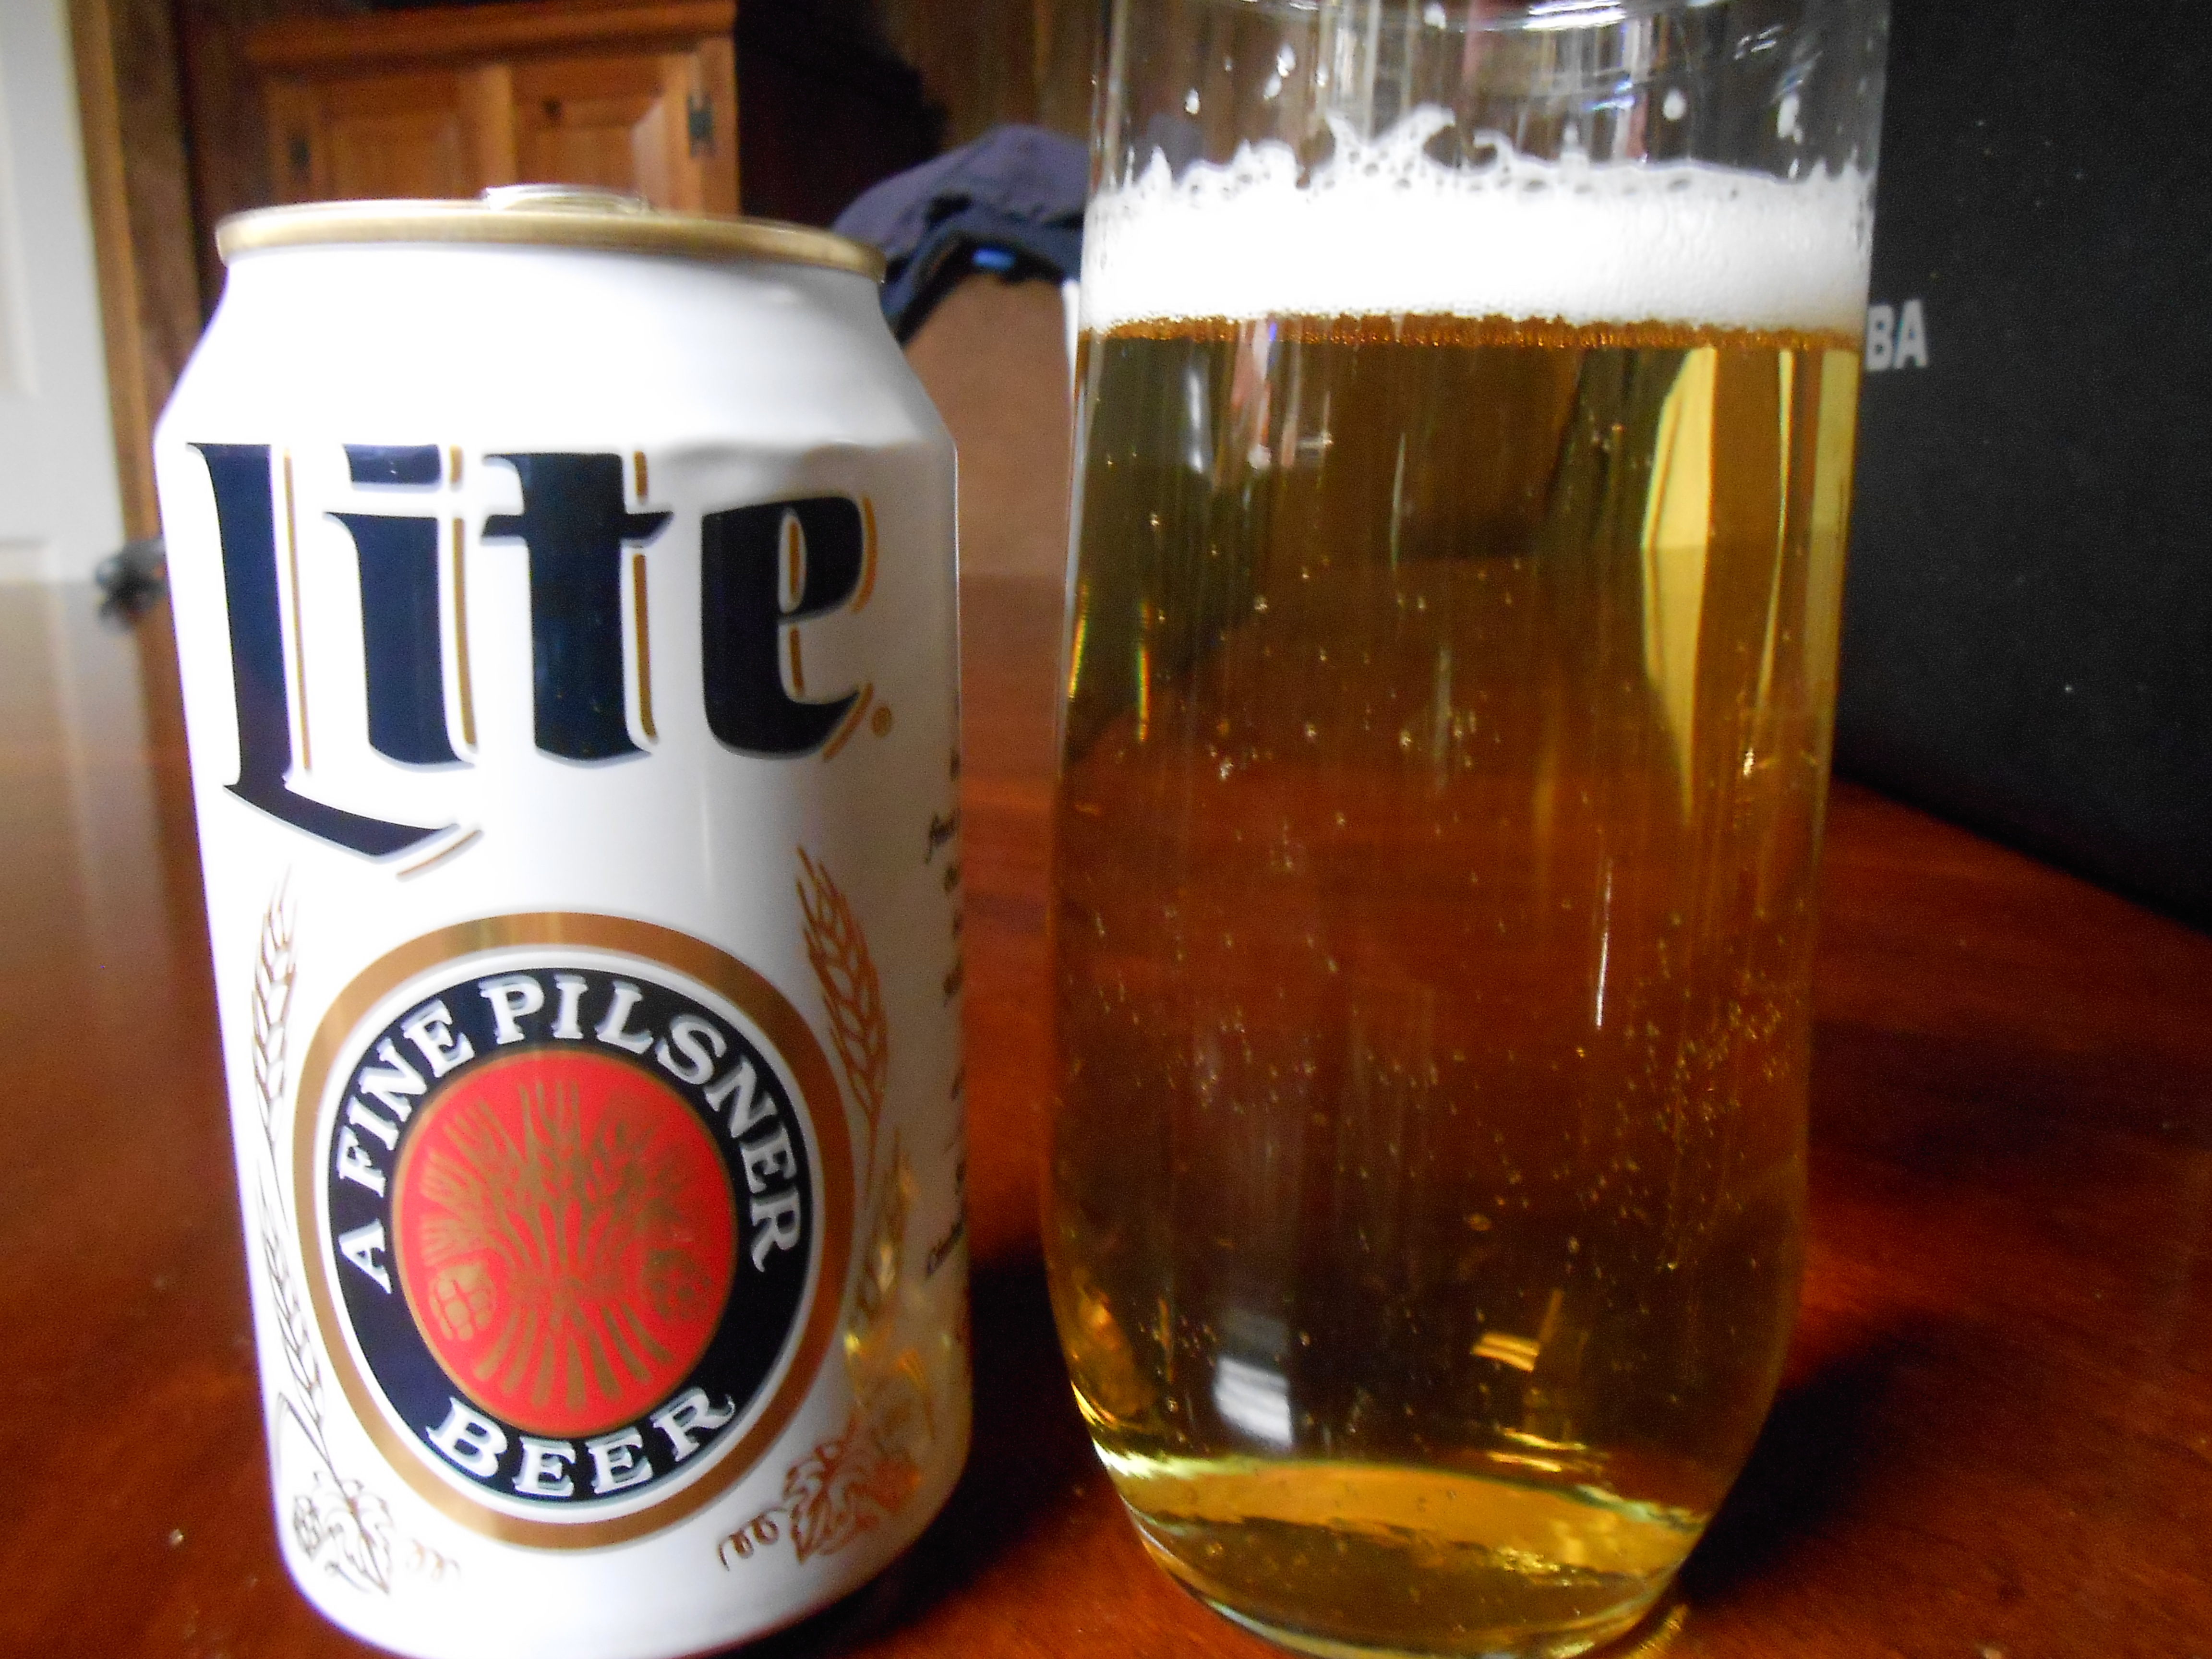 astronaut drinking miller lite beer on the moon - photo #3